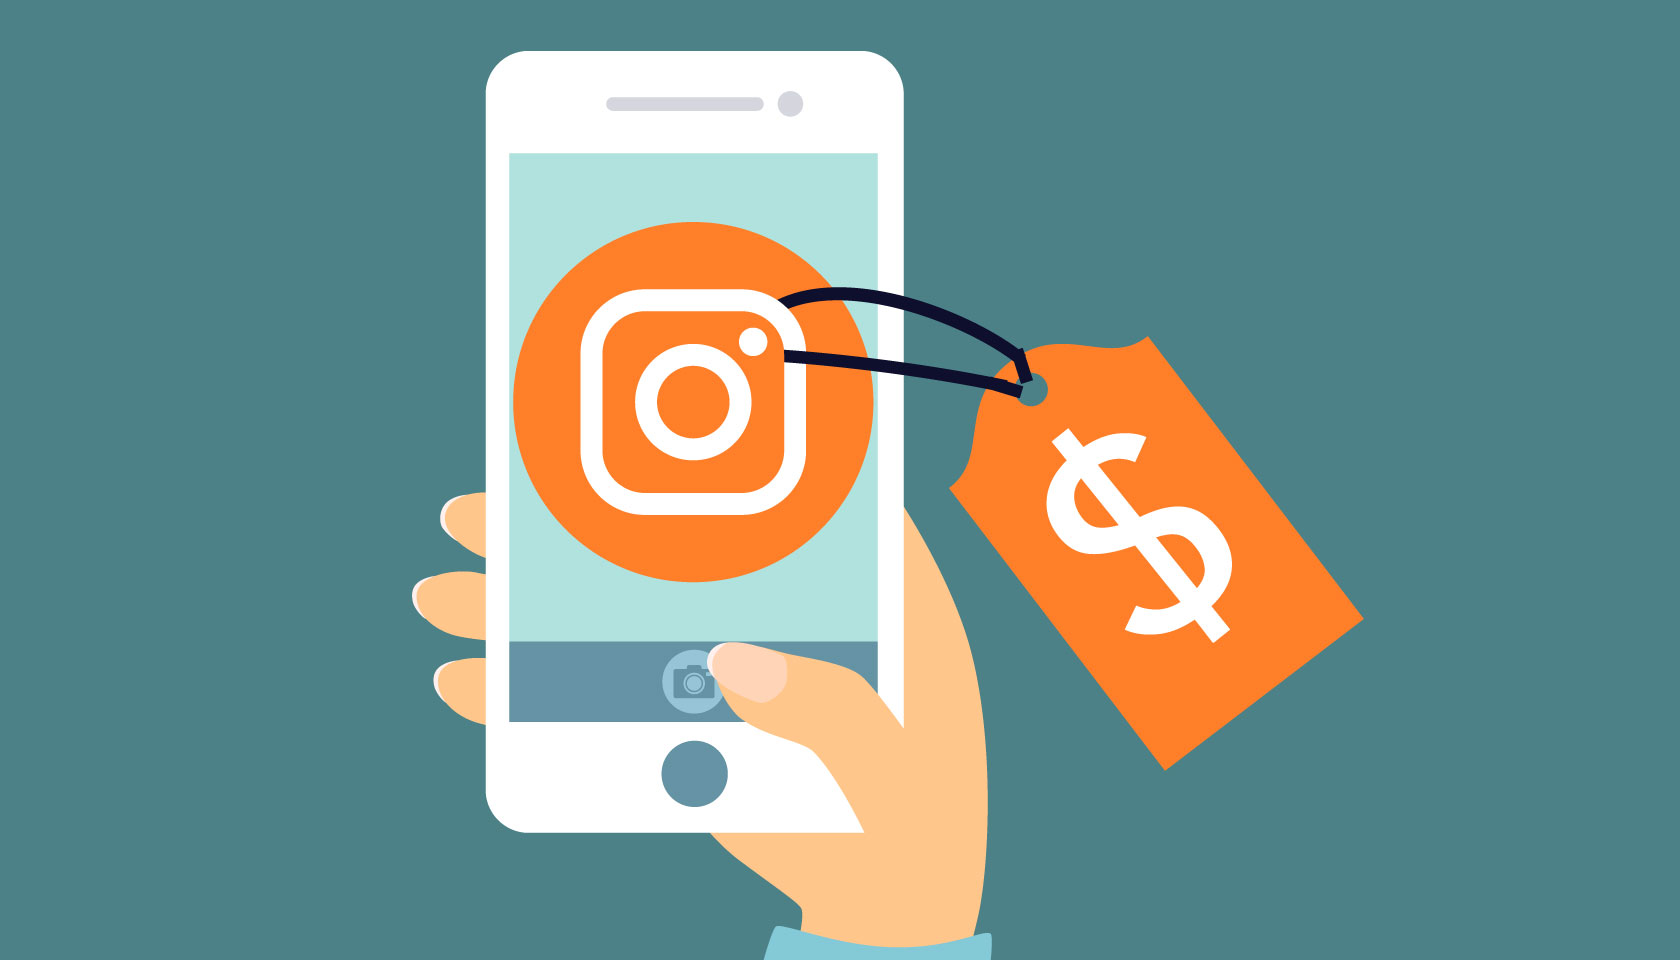 Techniques for Hacking an Instagram Account